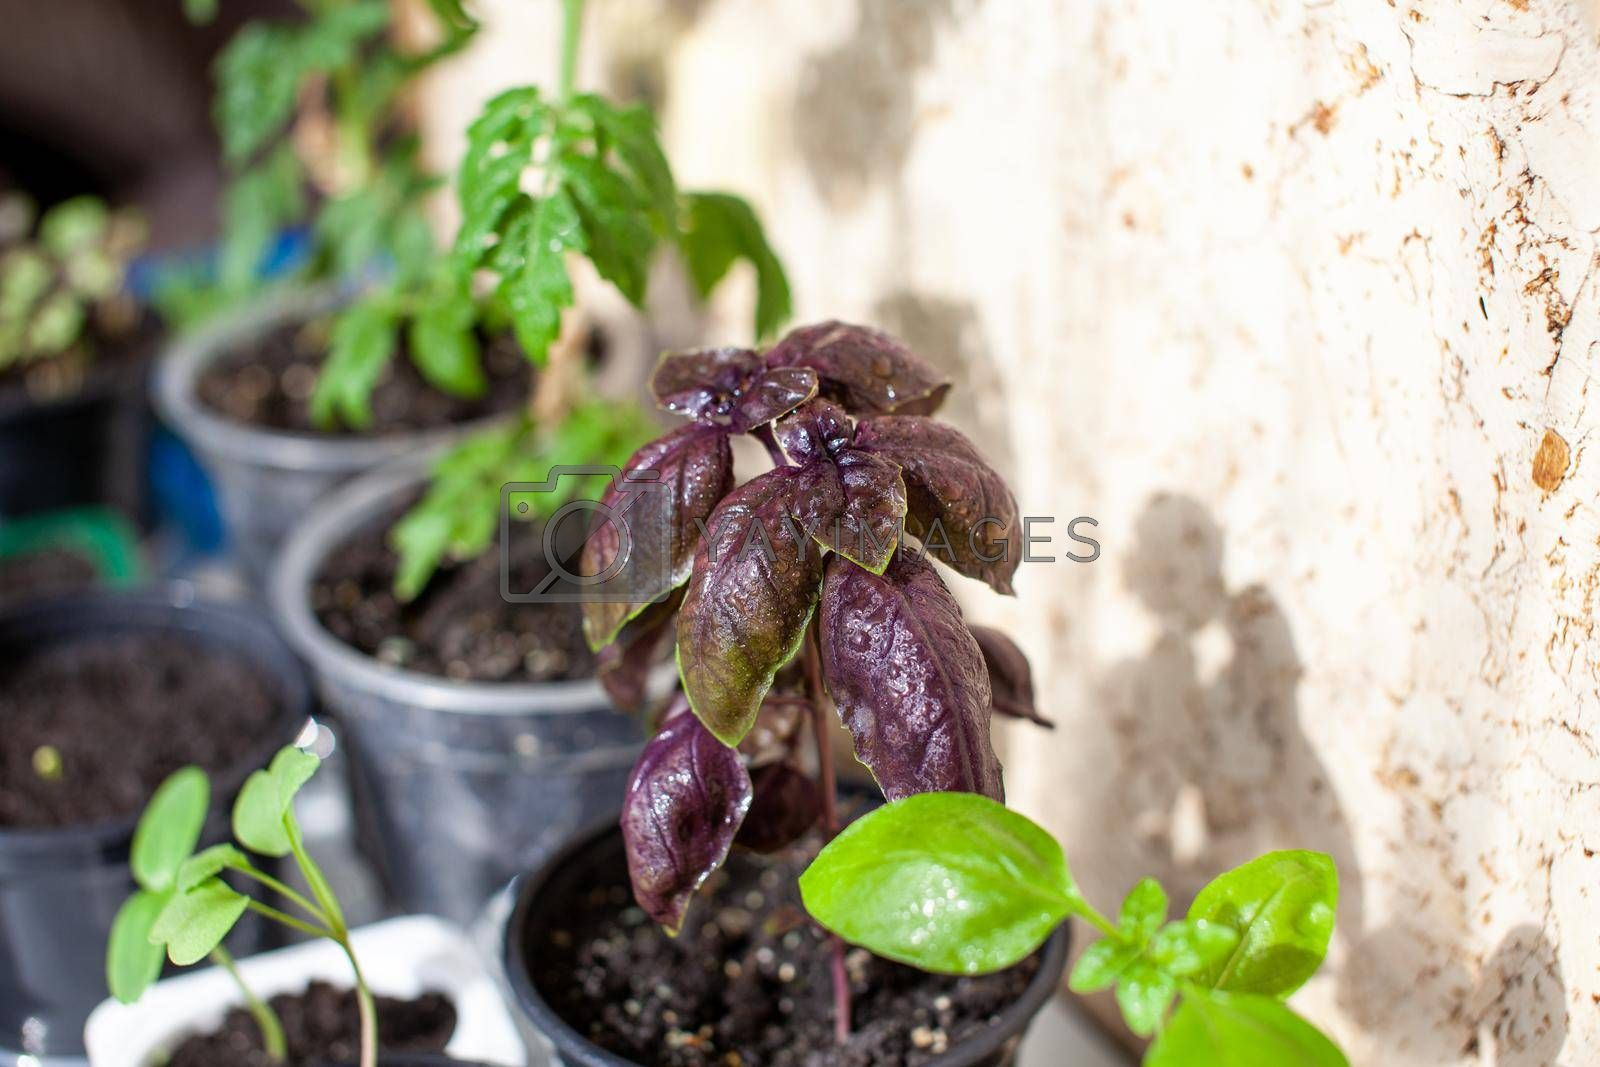 Close-up of purple basil and other green plants grown in a tray on a home windowsill. Seedlings of domestic plants. Healthy food concept, vegan concept. Home gardening.